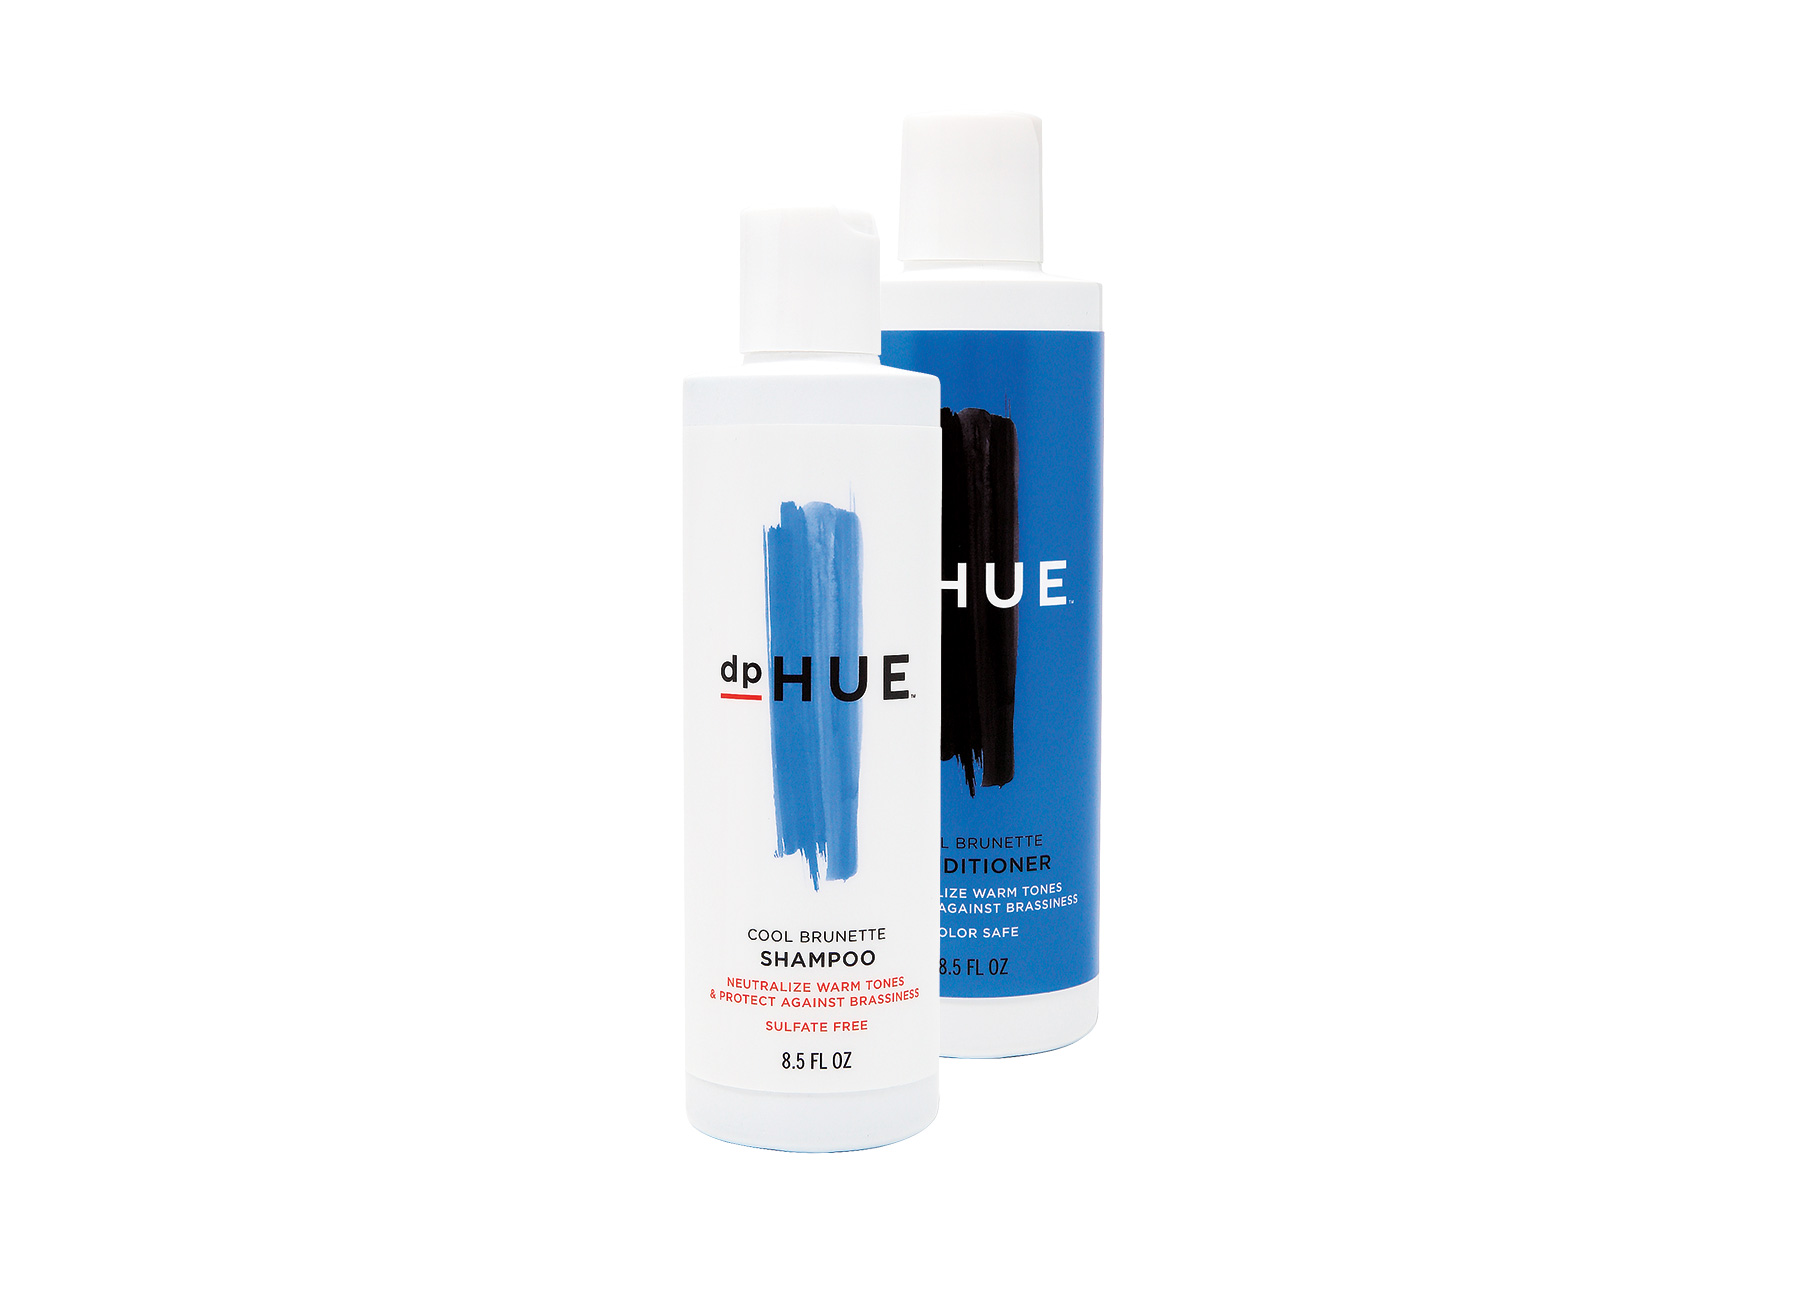 DP Hue Cool Brunette Shampoo and Conditioner (0718BPS)